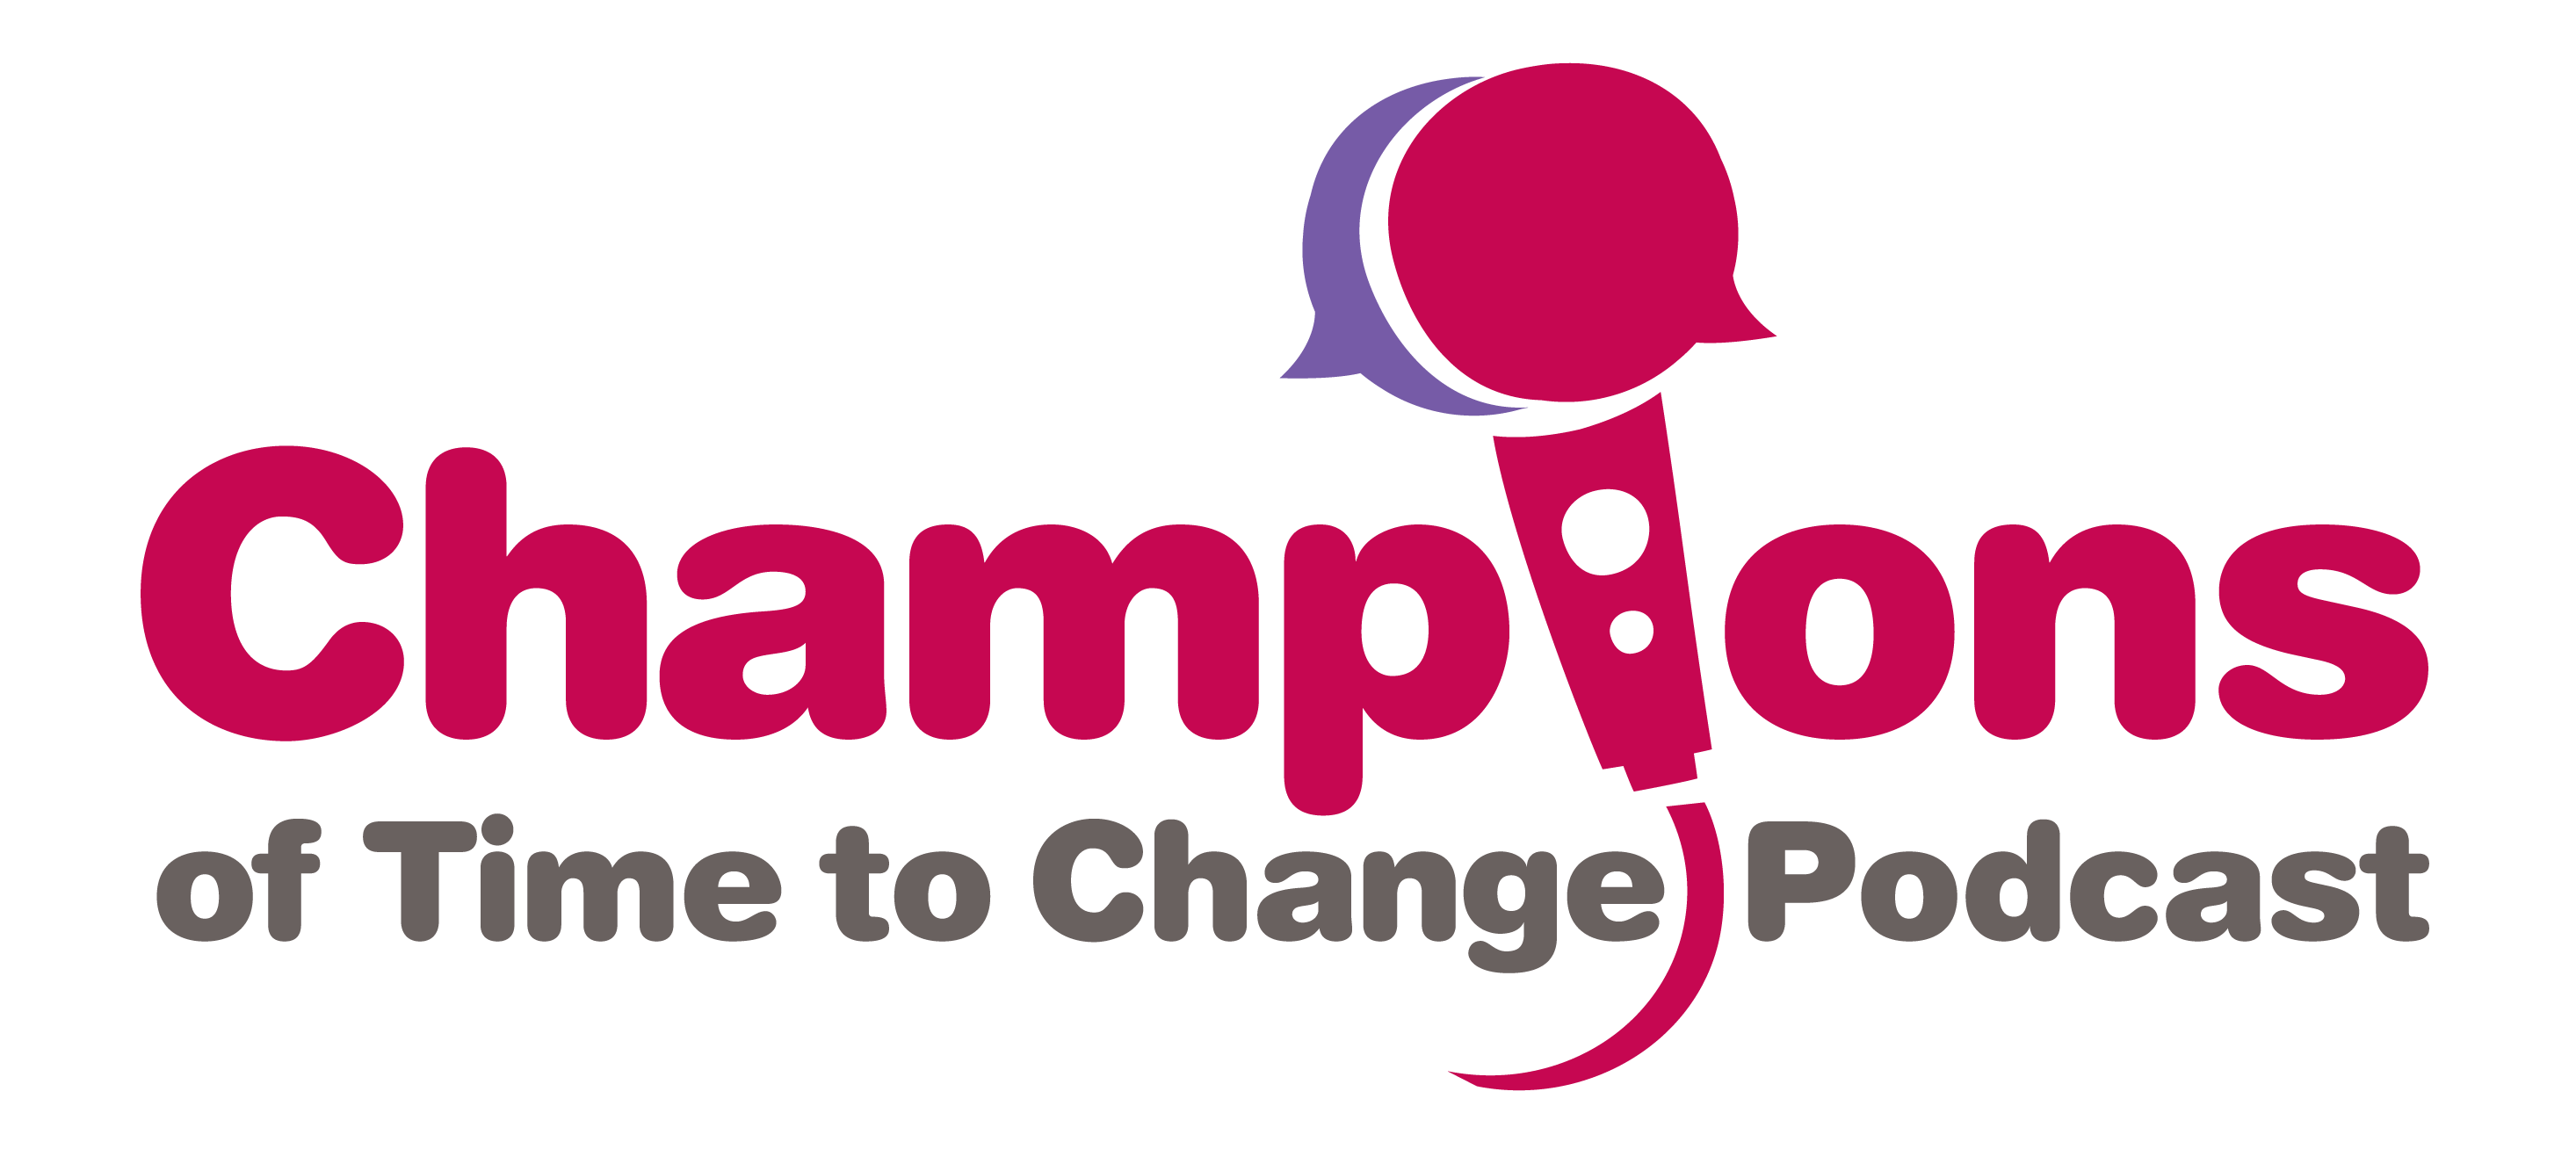 Time to Change podcast logo